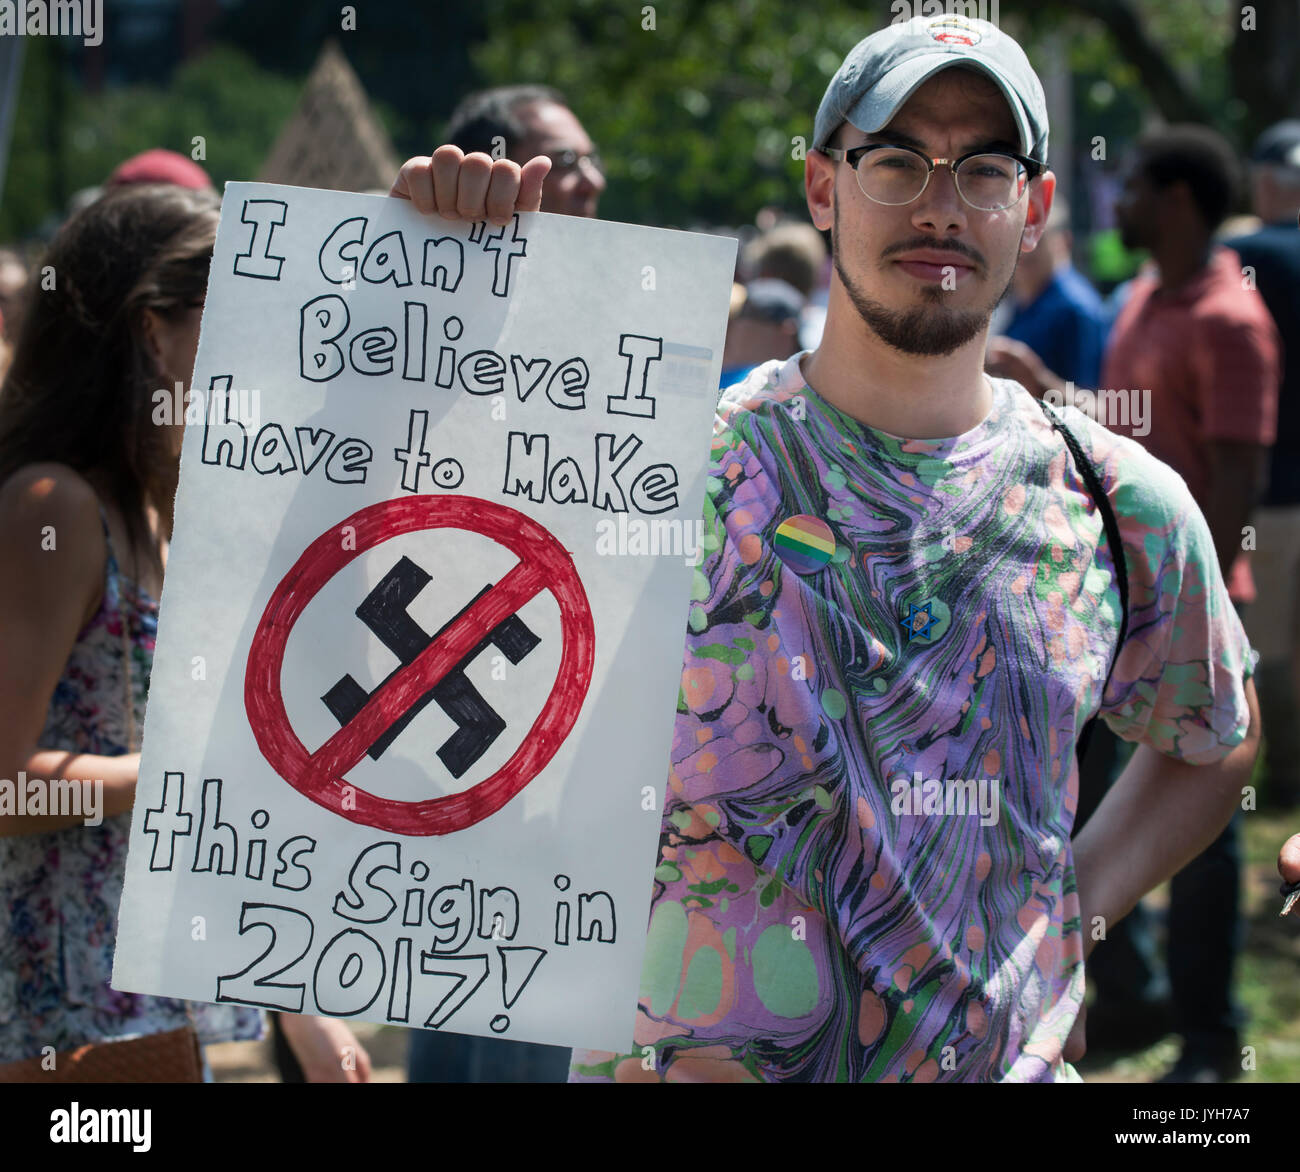 Boston, USA. 19th Aug, 2017. Boston police estimated that up to 40,000 demonstrators gathered at the center of the Stock Photo